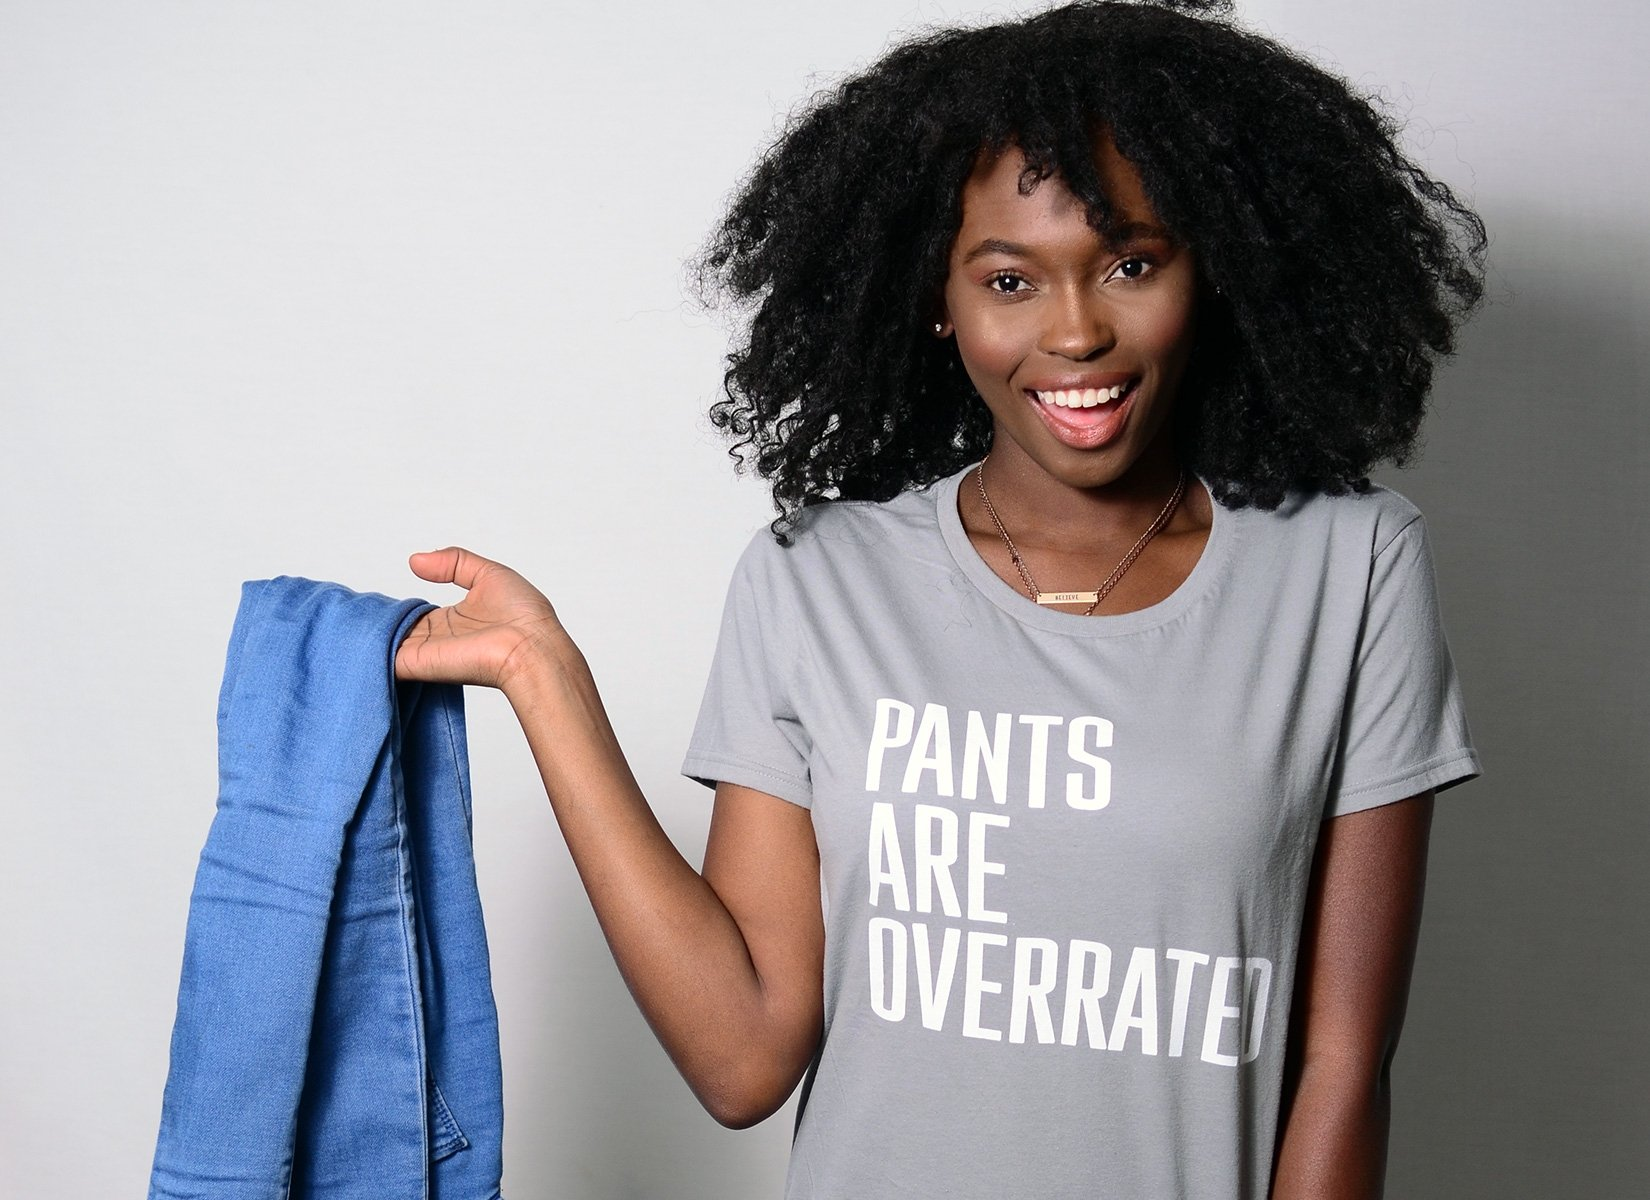 Pants Are Overrated on Womens T-Shirt